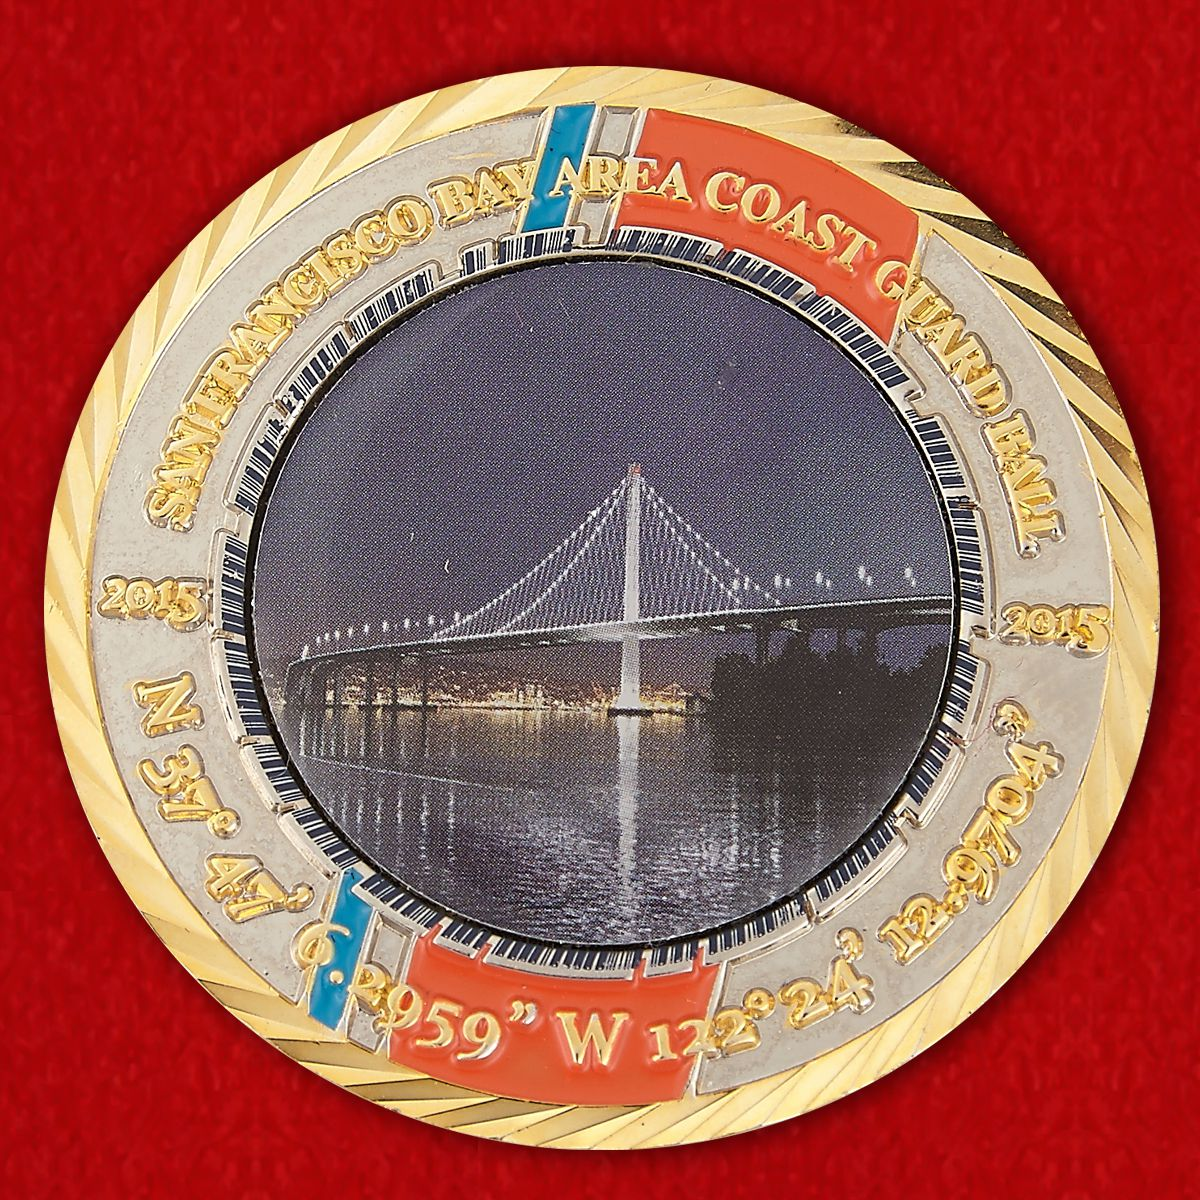 San Francisco Bay Area Coast Guard Ball Challenge Coin